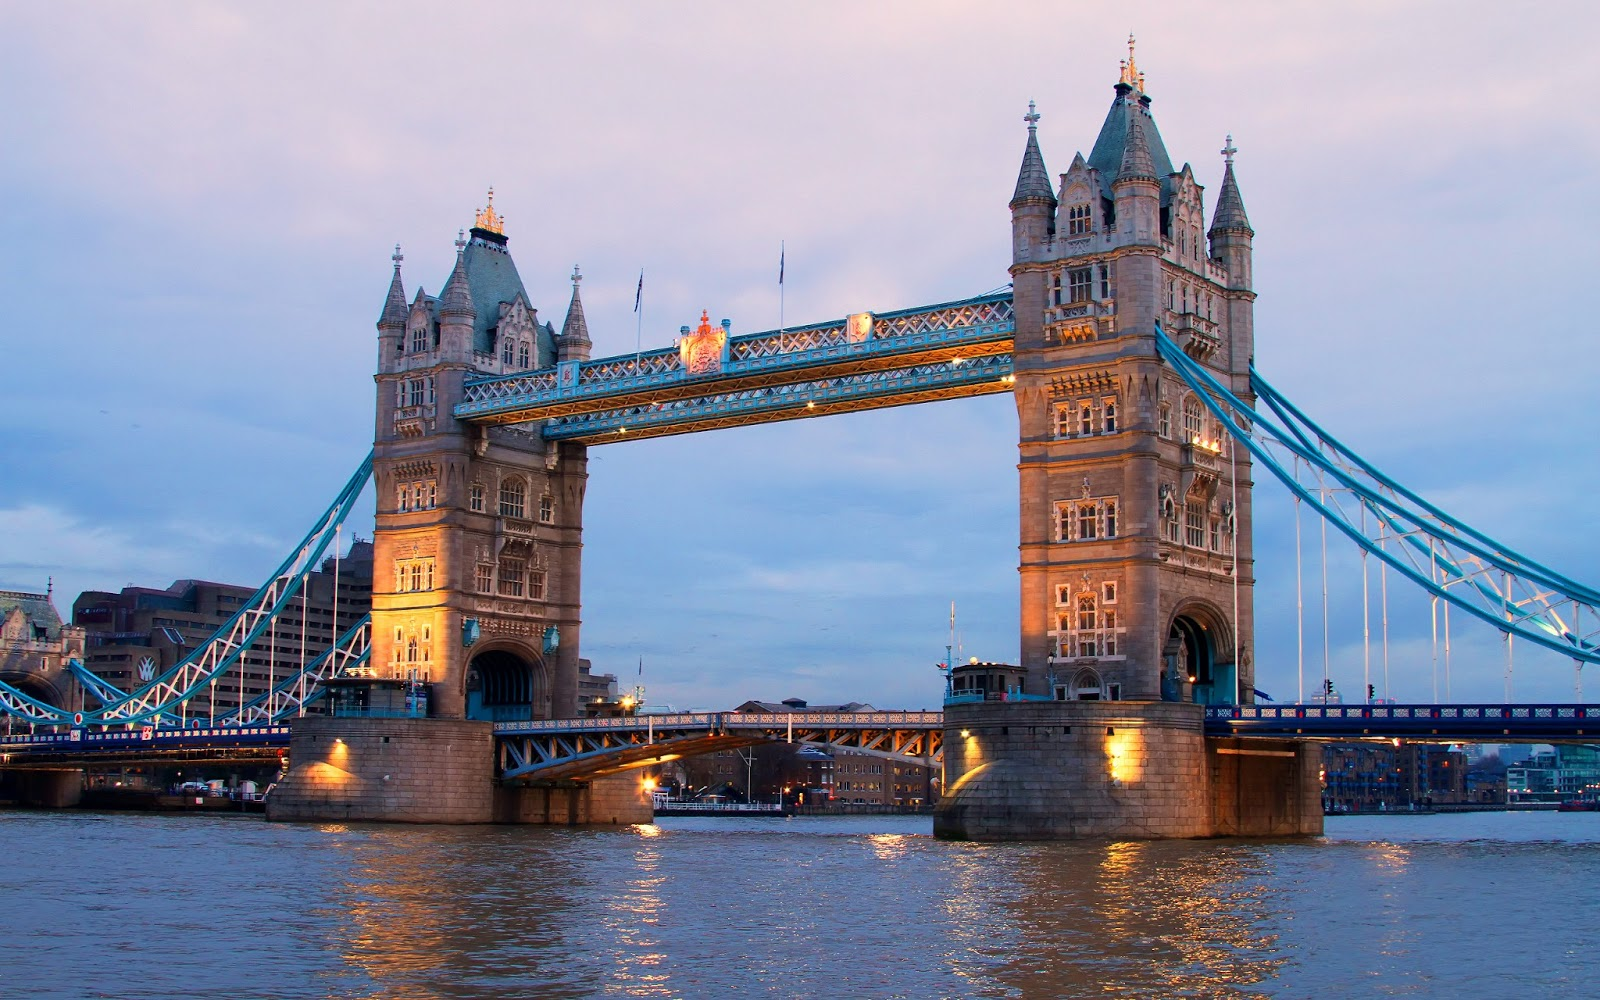 london hq full hd wallpapers download 2013 Fine HD Wallpapers 1600x1000